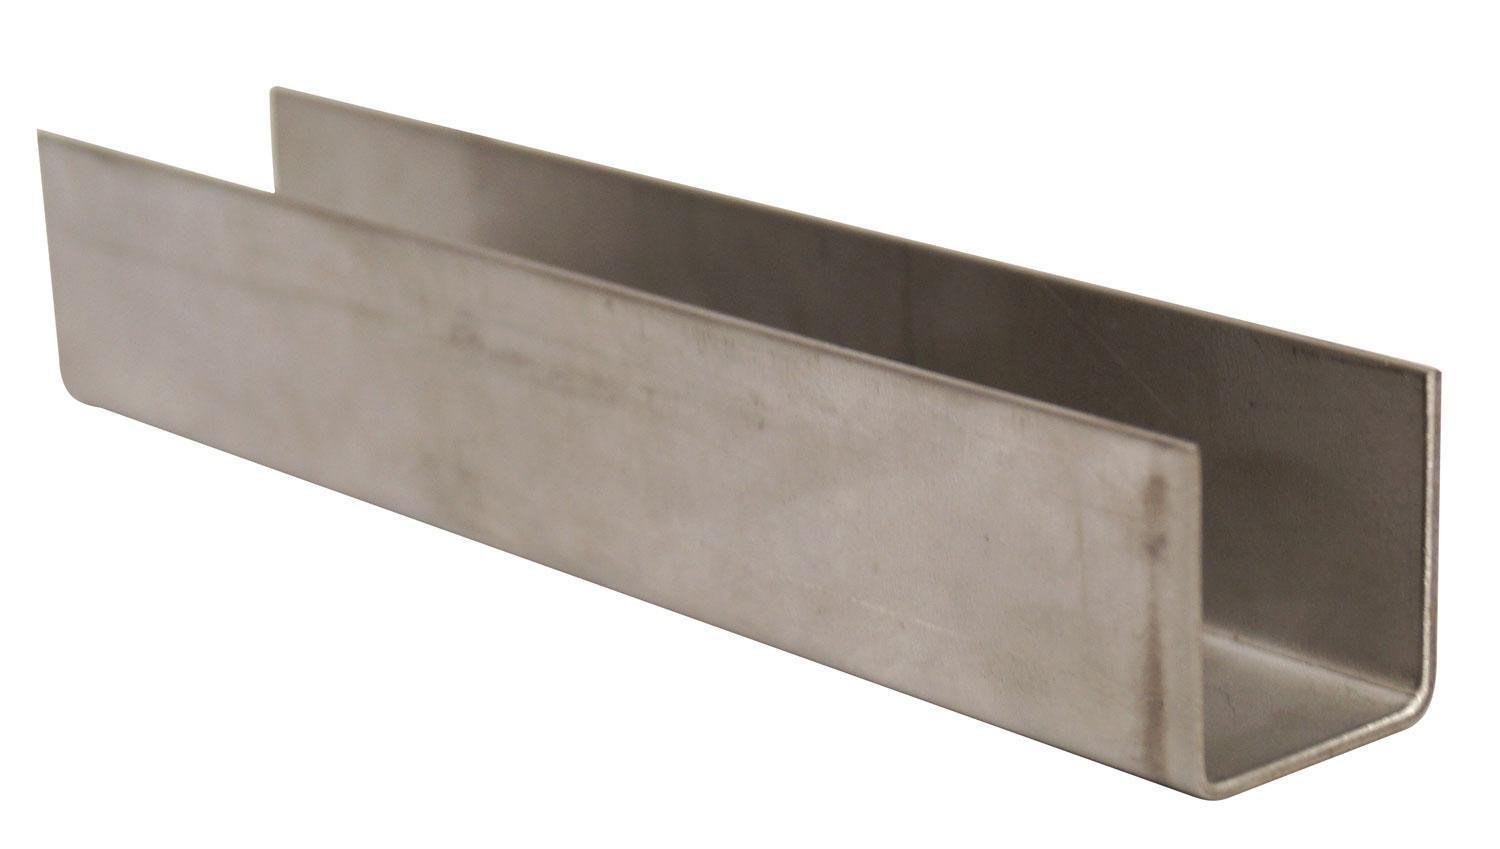 6 Stainless Steel Pattern Bar Mold